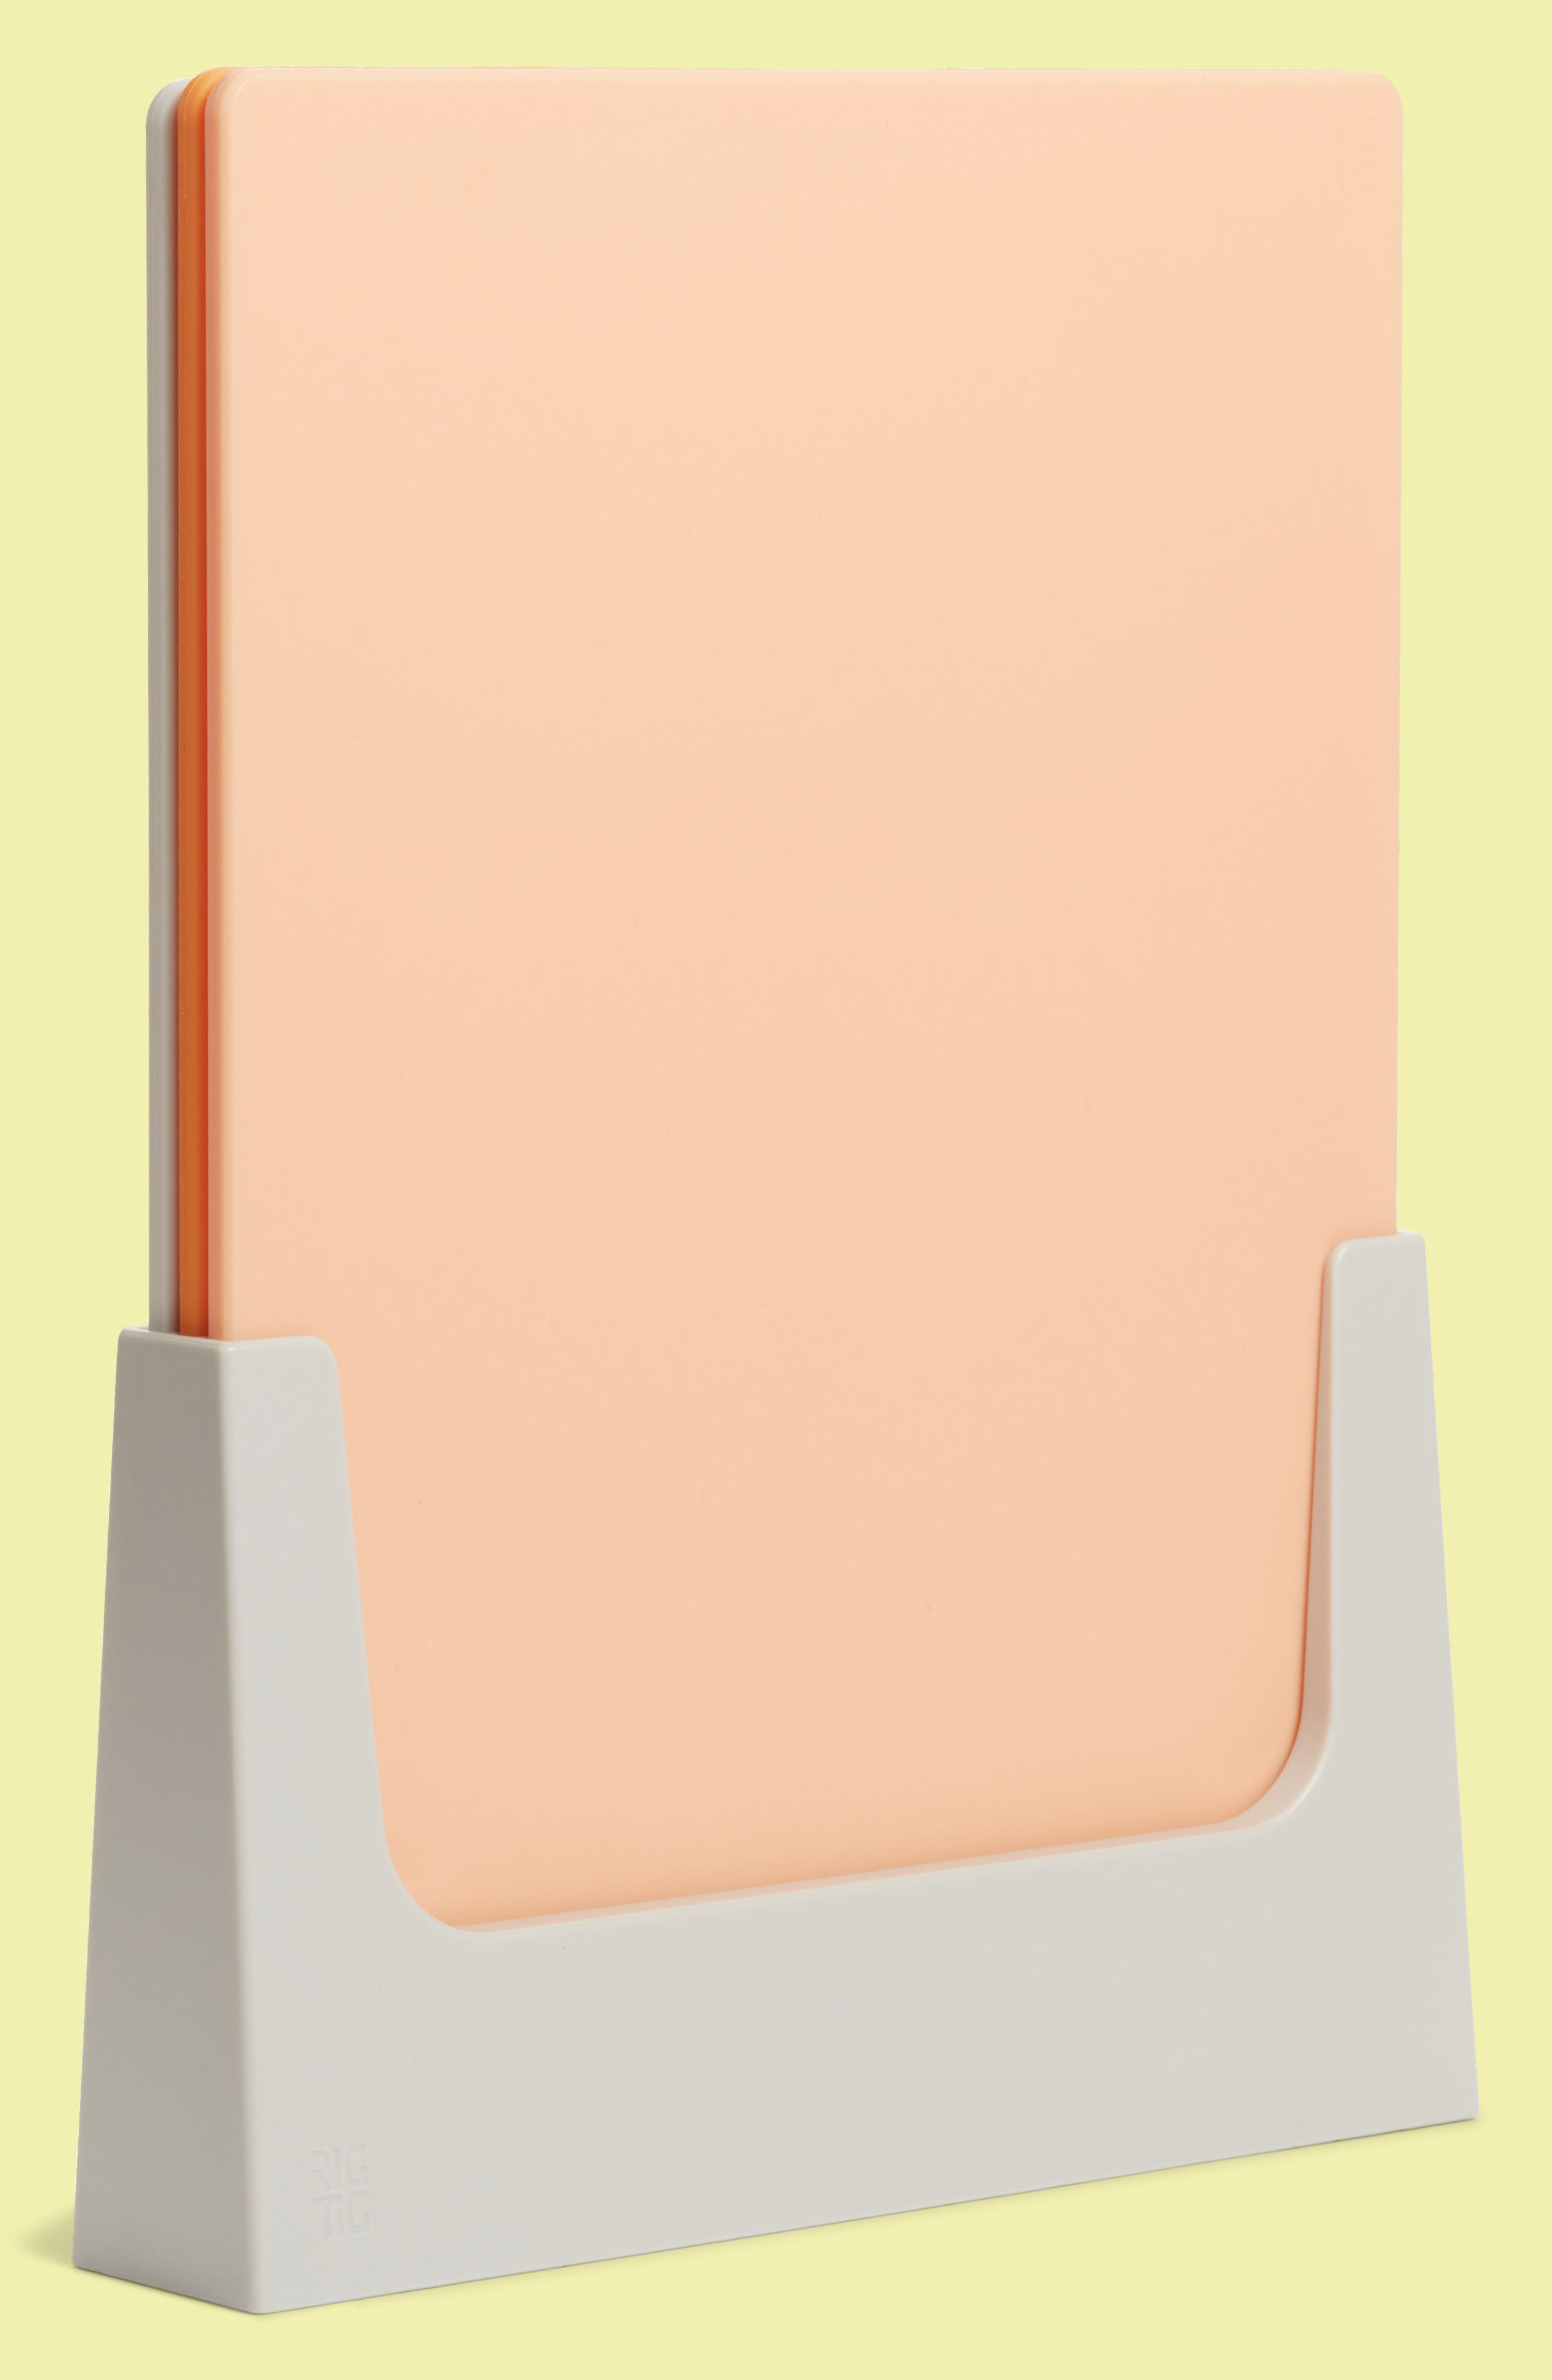 Rig-Tig Chop-It Set of 3 Cutting Boards,                             Main thumbnail 1, color,                             Apricot